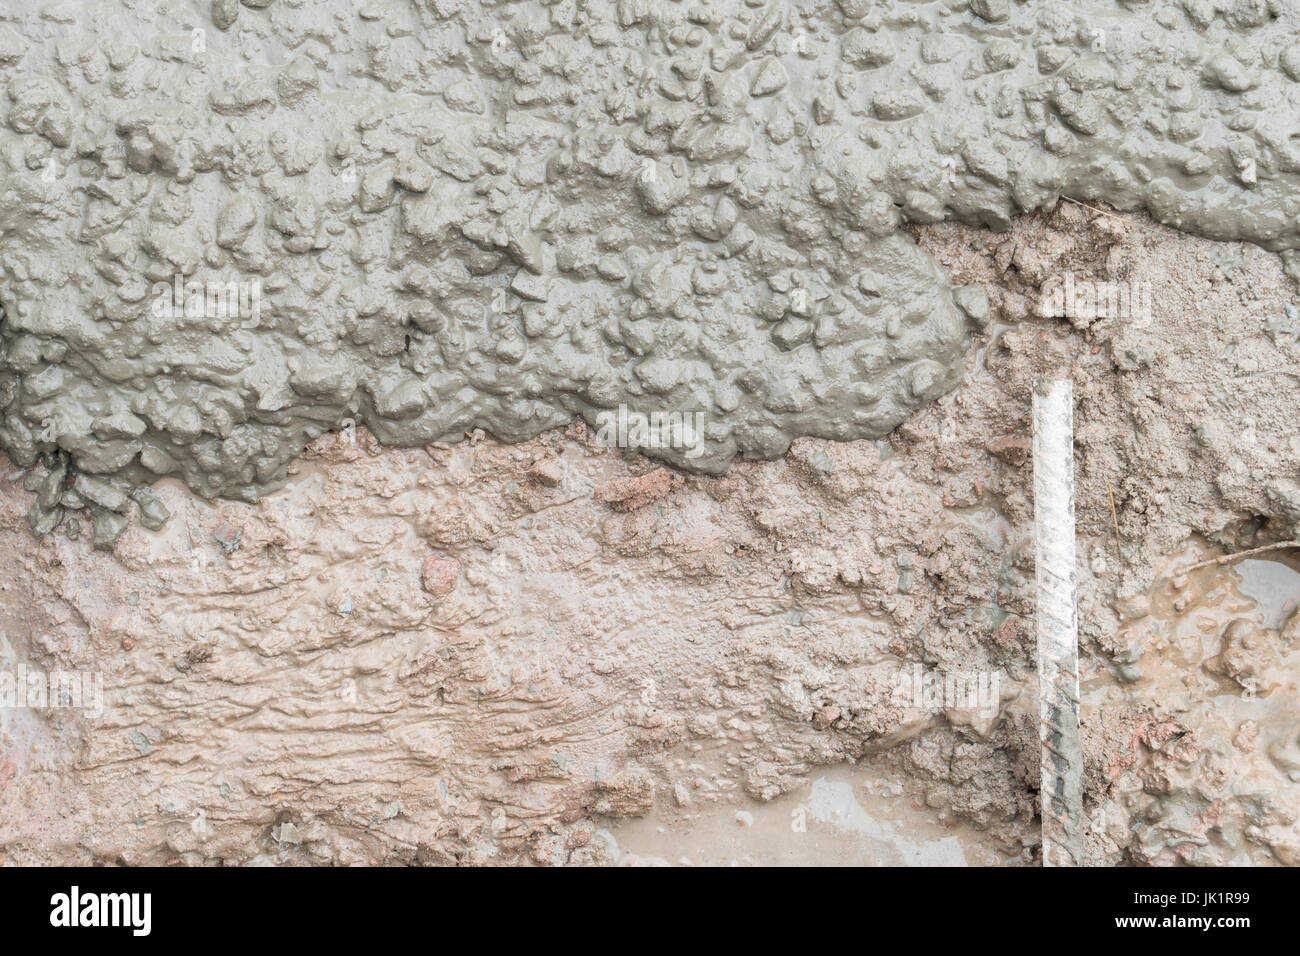 Texture Of Ready Mixed Concrete Cement Mortar Sand And Cement